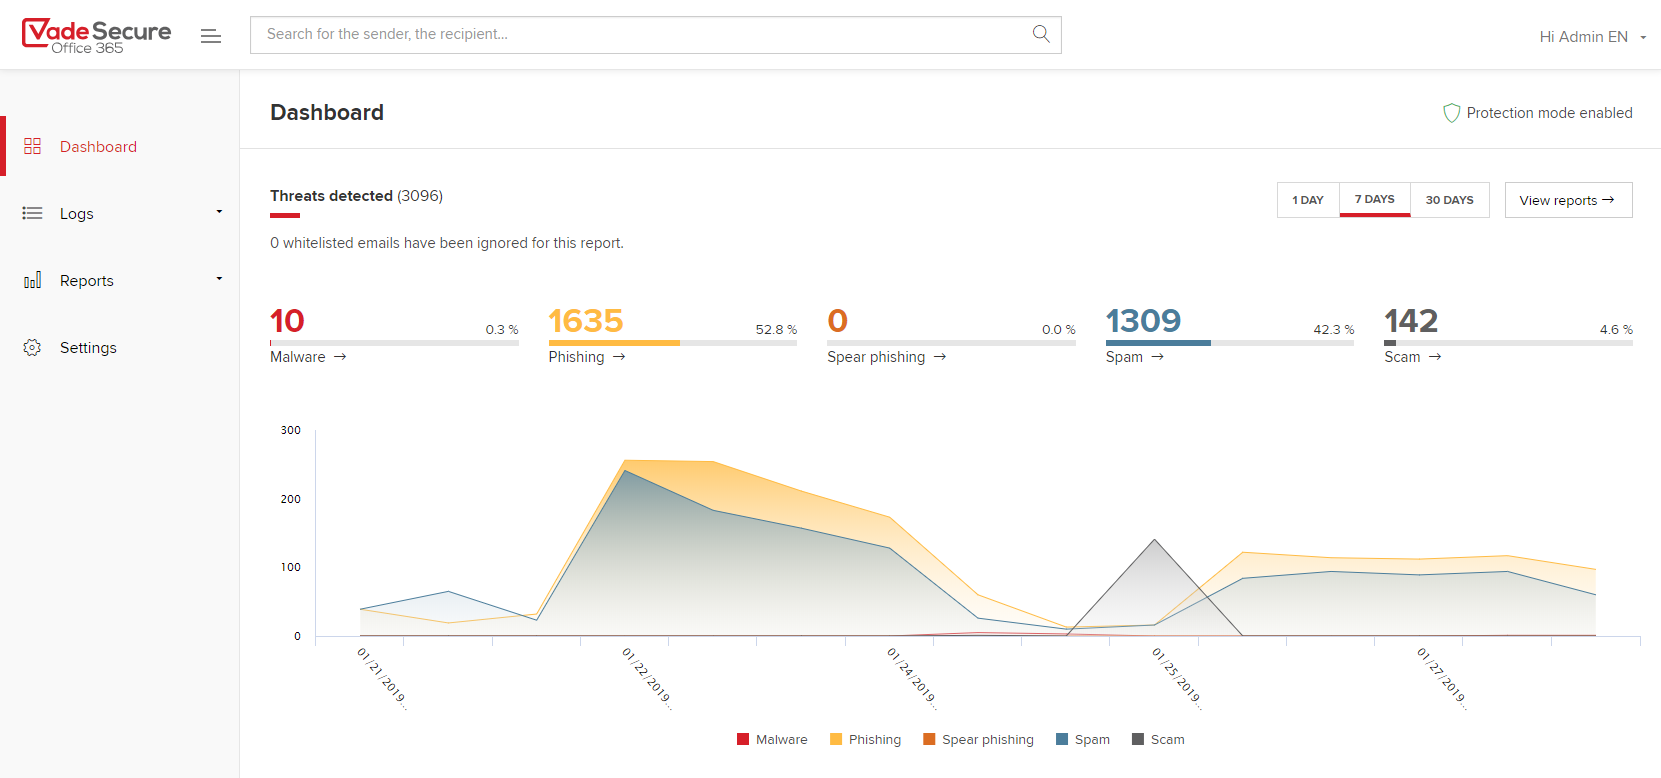 Vade Secure Office 365-Dashboard